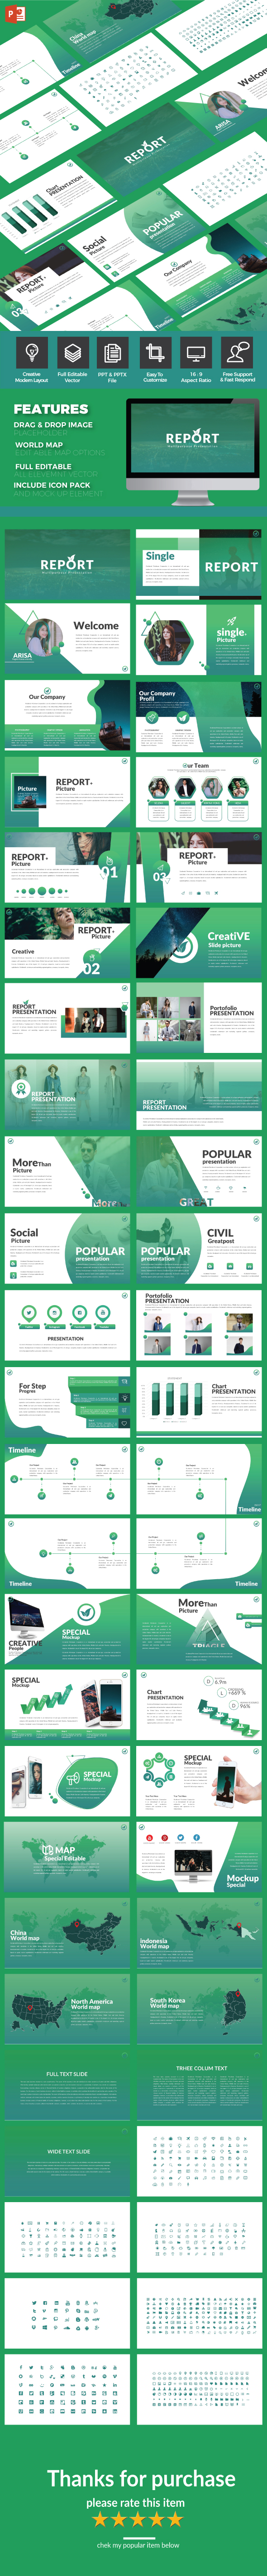 Report - Multipurpose PowerPoint Template - PowerPoint Templates Presentation Templates